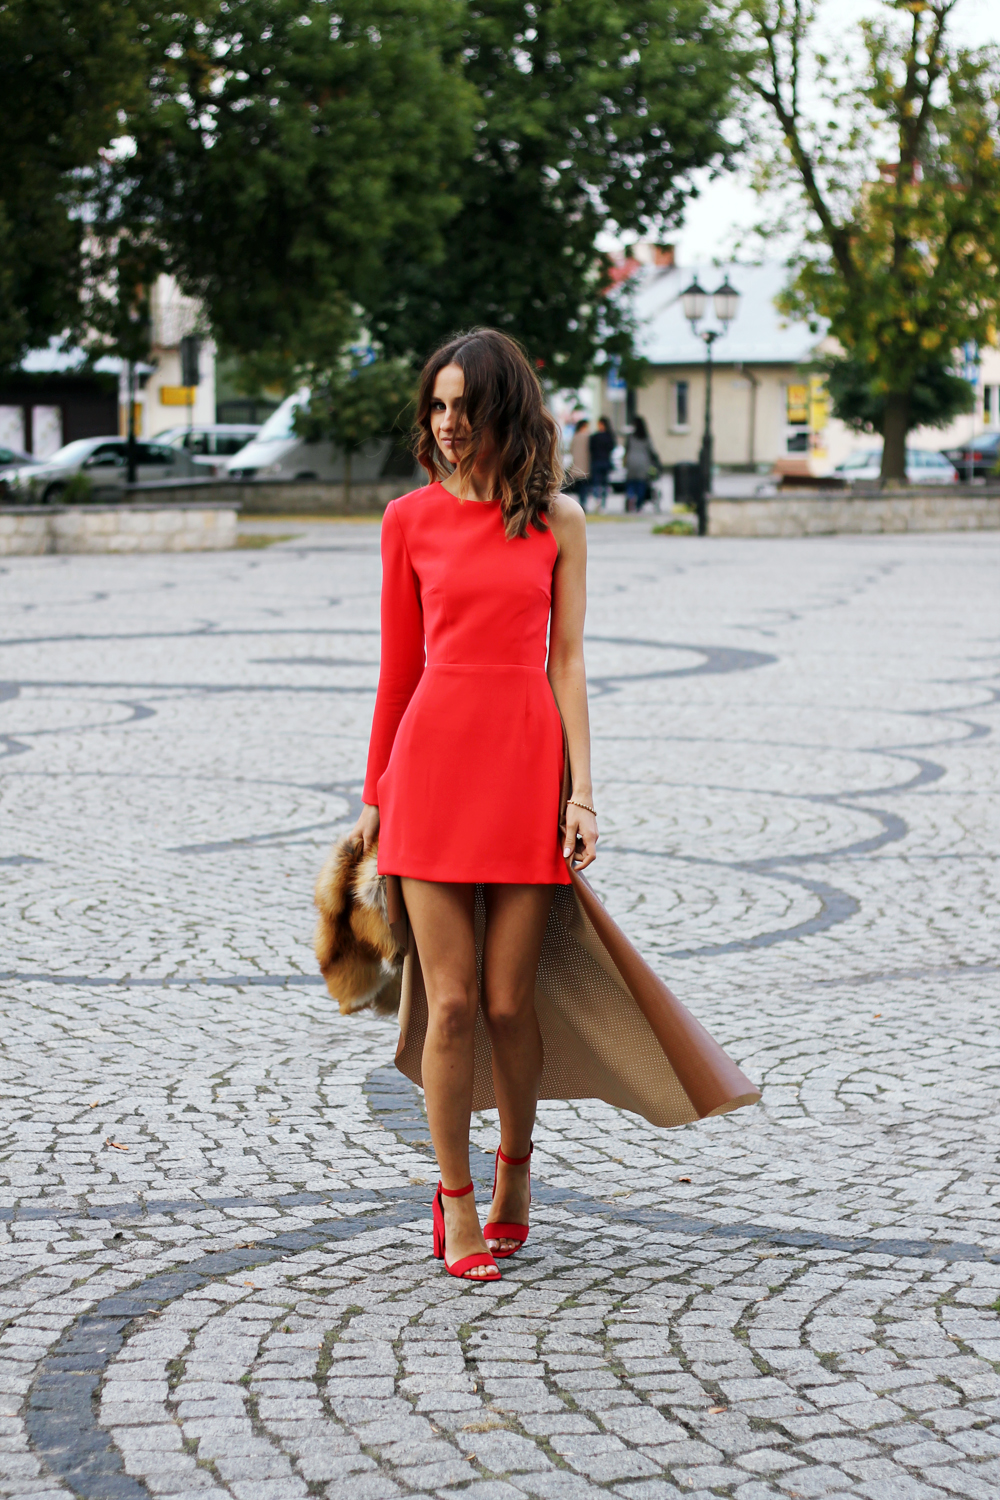 red dress original chic outfit clothes tumblr girl vogue lookbook ootd party look lilis